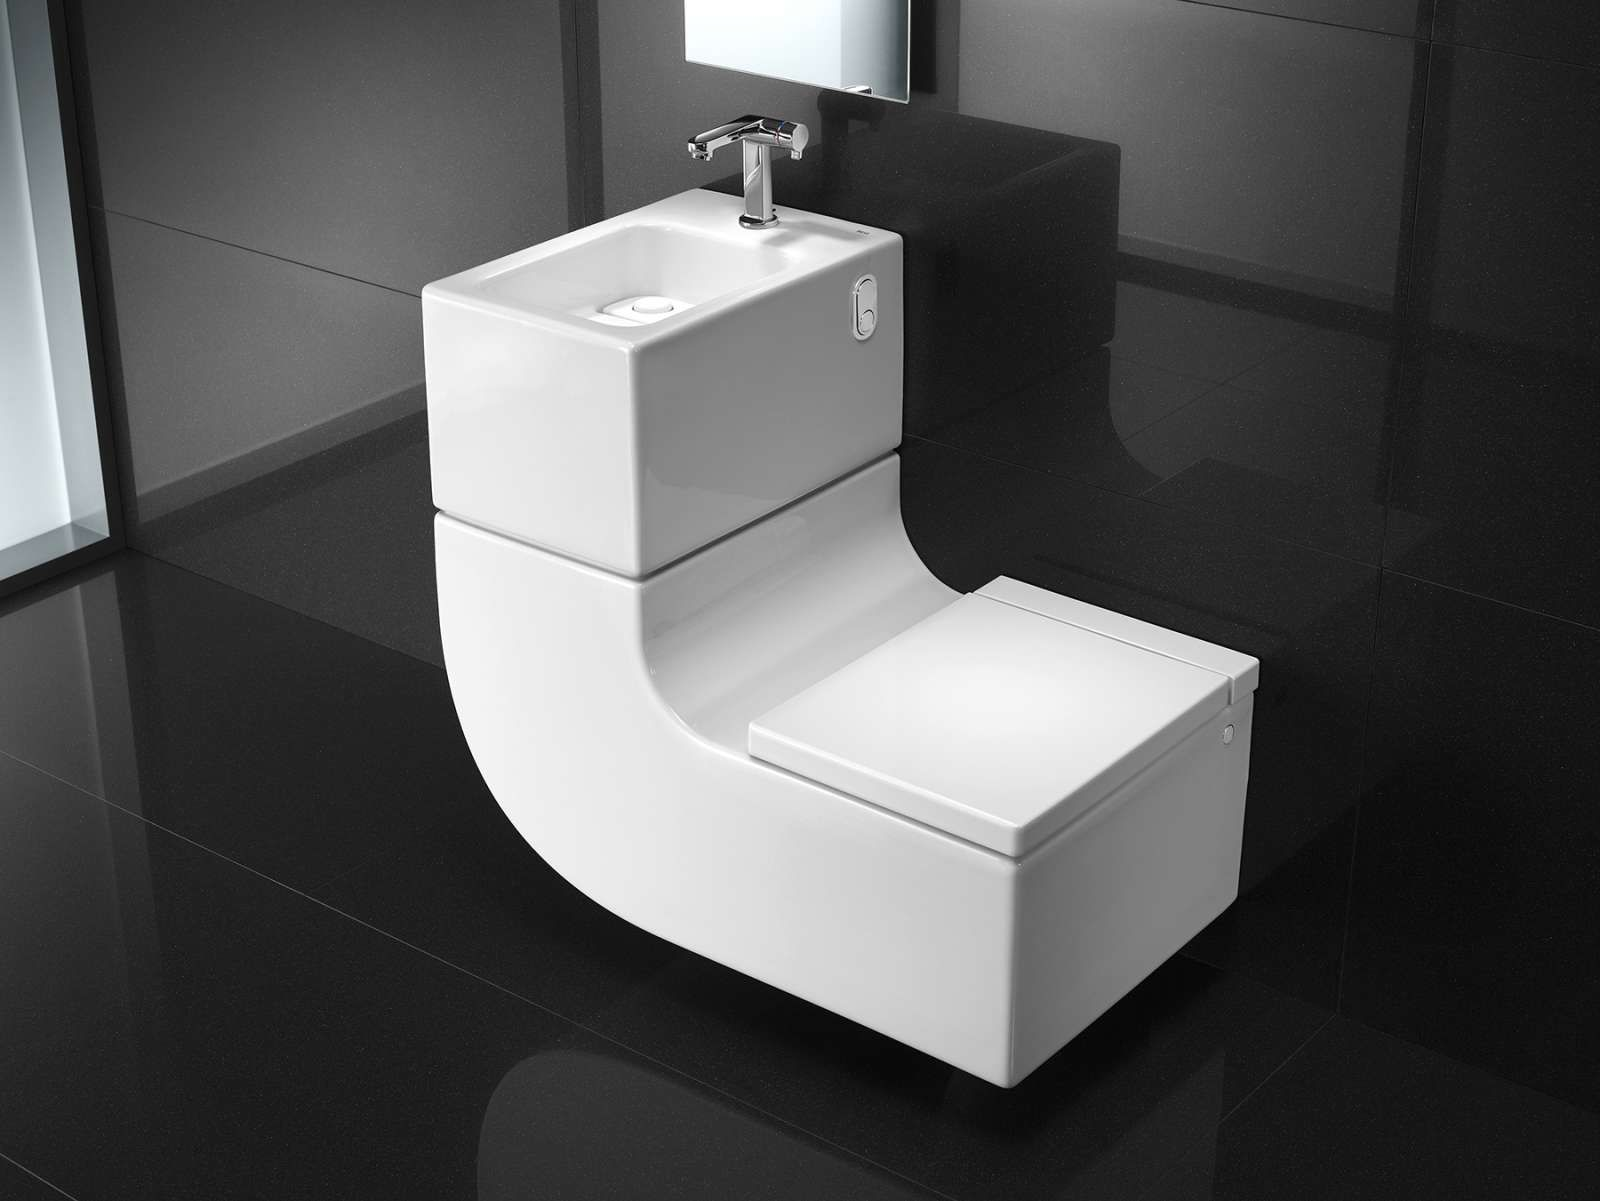 Superior The Most Beautiful Toilet In The World! Find The Contemporary W + W Wall  Mount